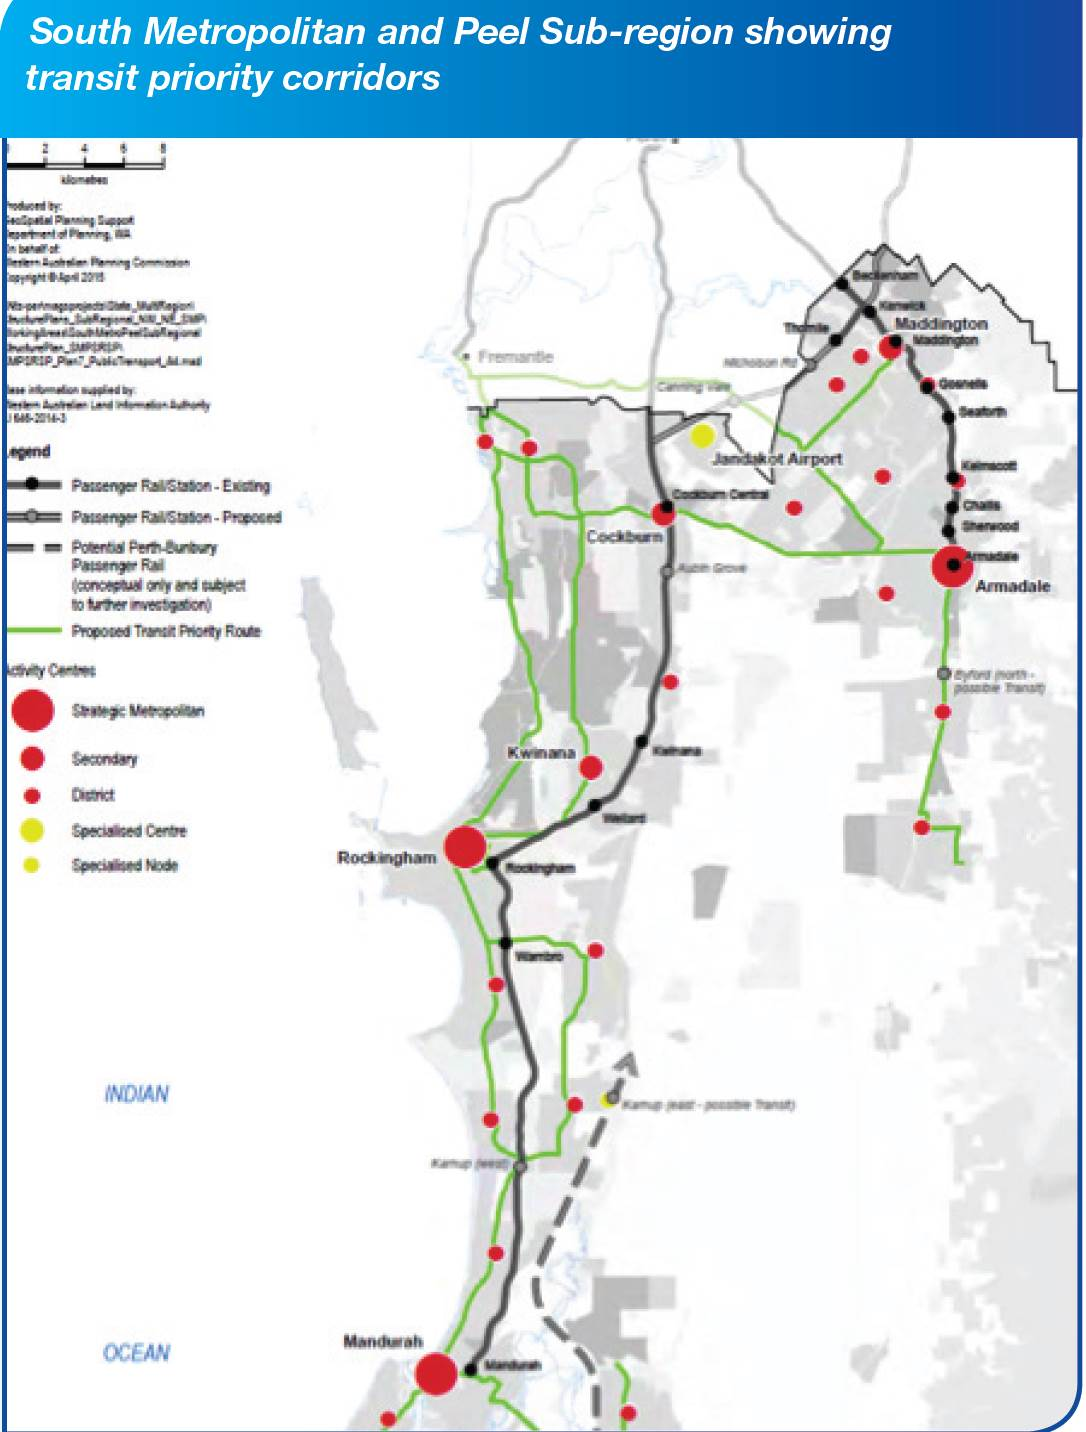 South Metro and Peel Sub-Region showing transit priority corridors